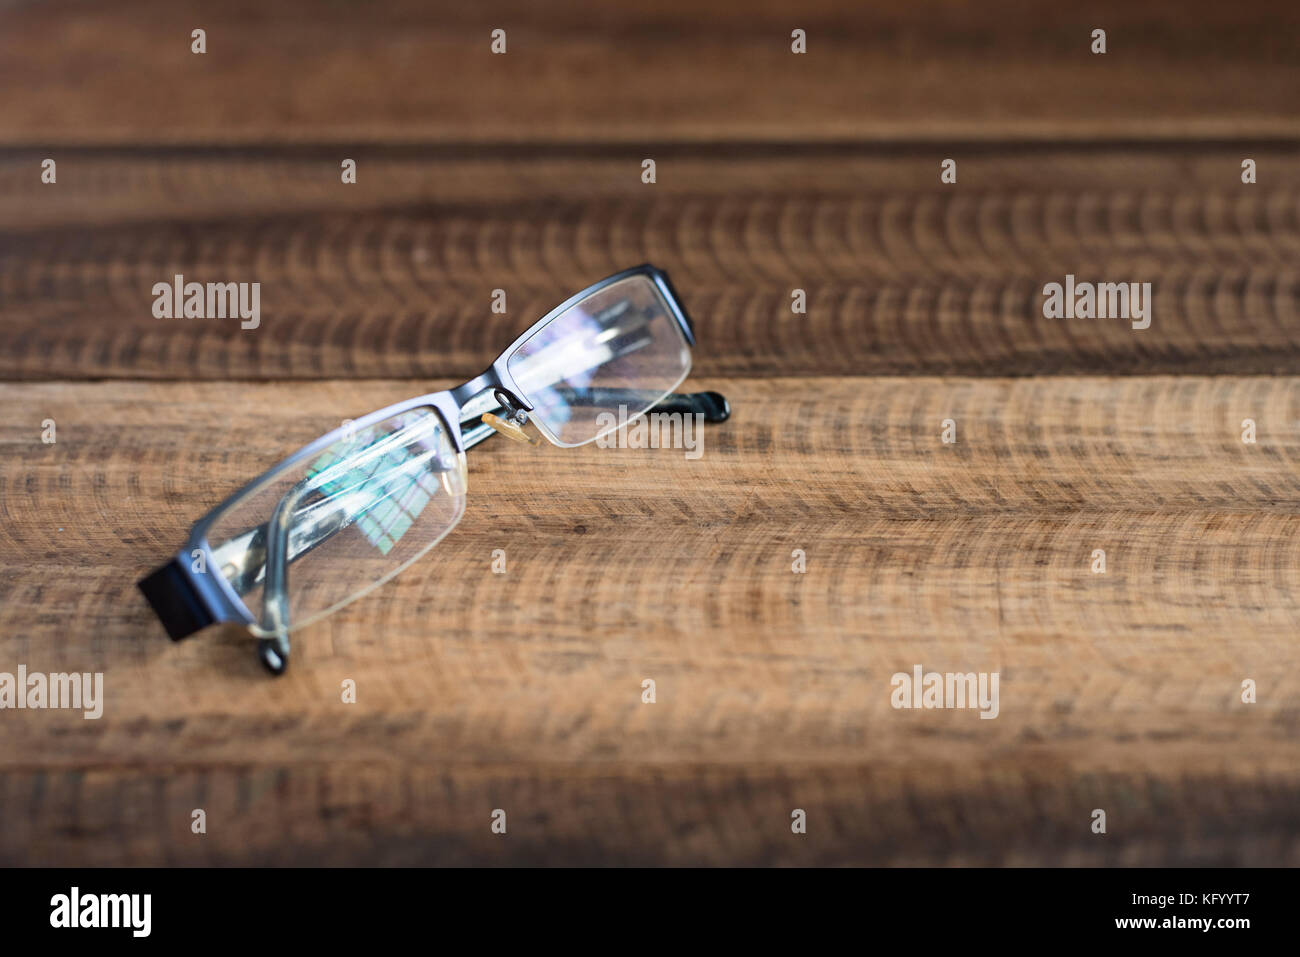 spectacle on a wooden background. spectacles with reflection of a window. image with copy space (selective focus) - Stock Image